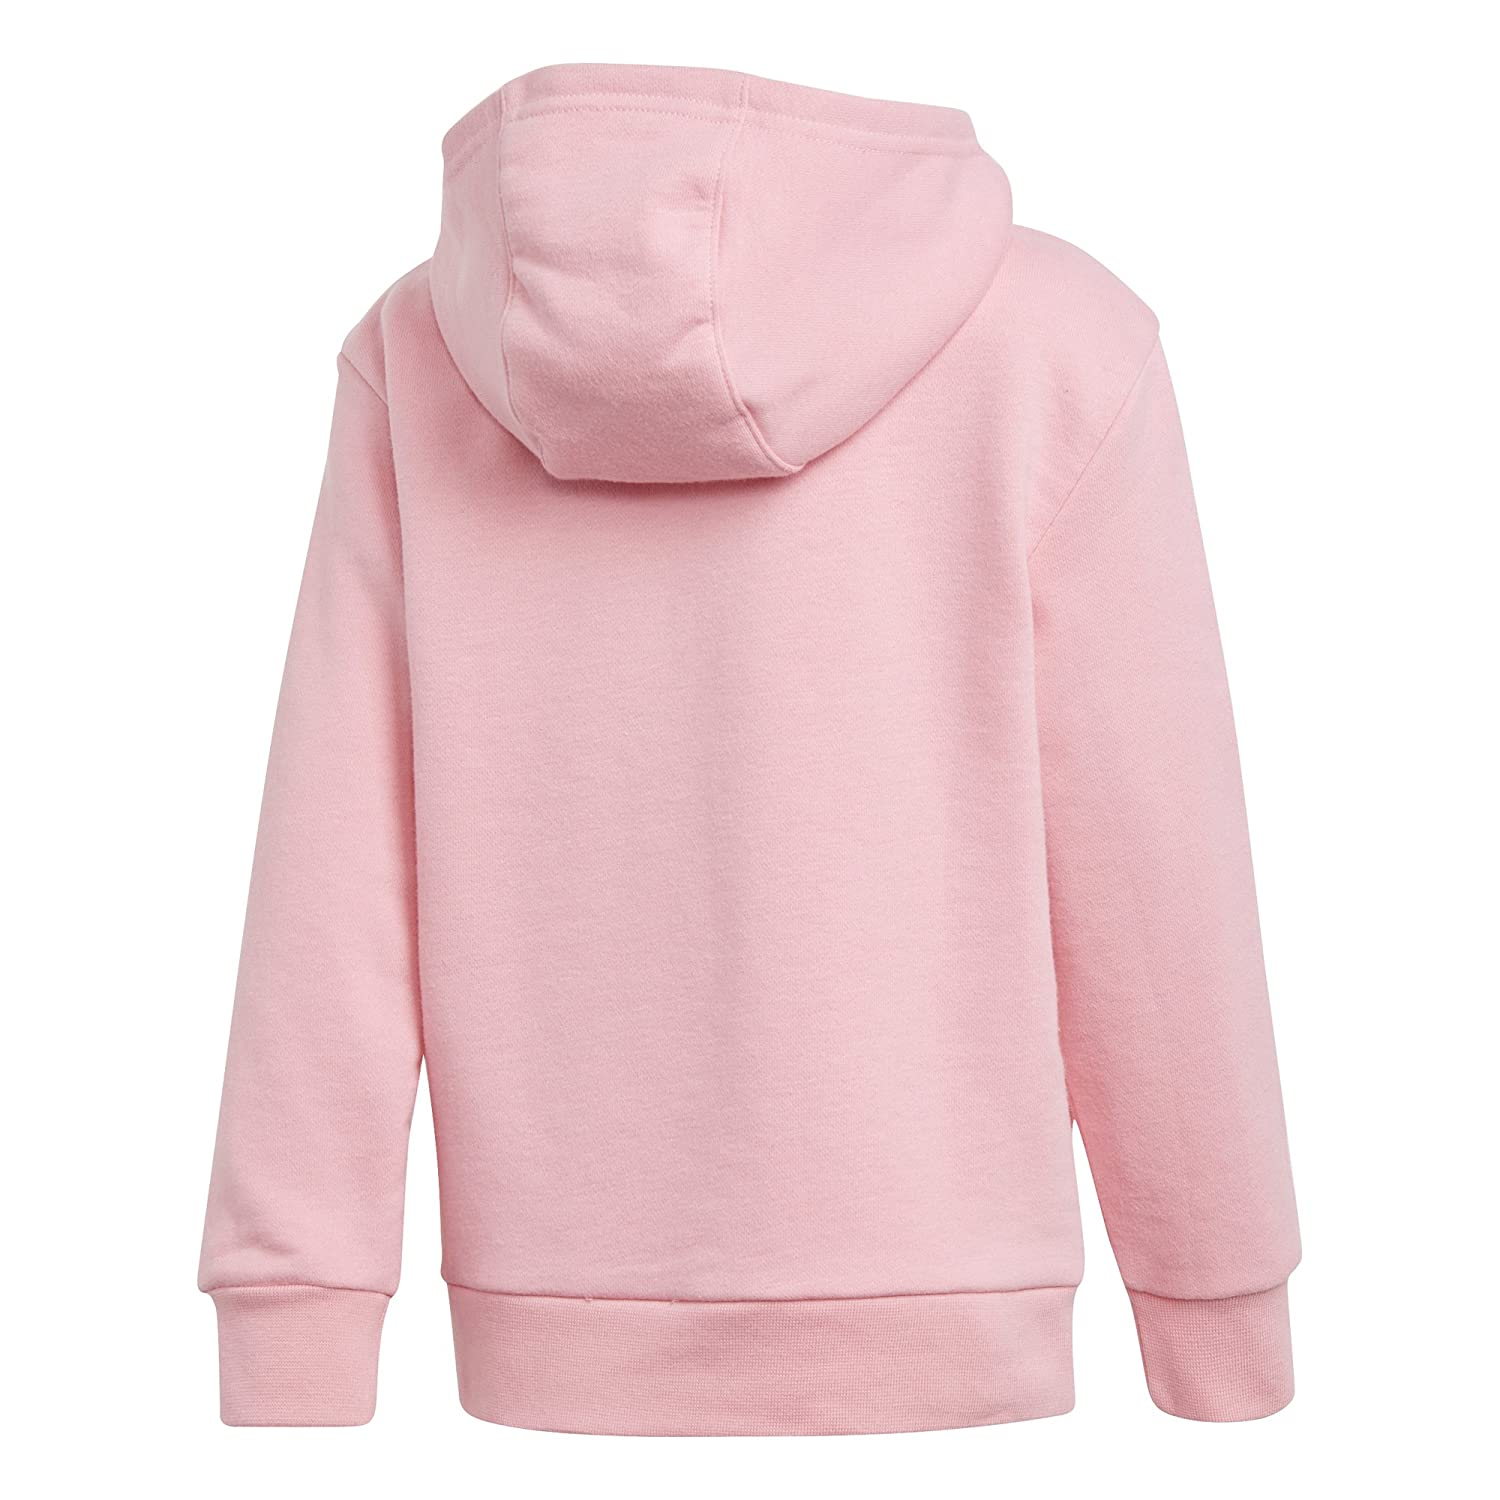 6be1a5a7 adidas hoodie set Sale. Up to 56% Off. Free Shipping & Returns